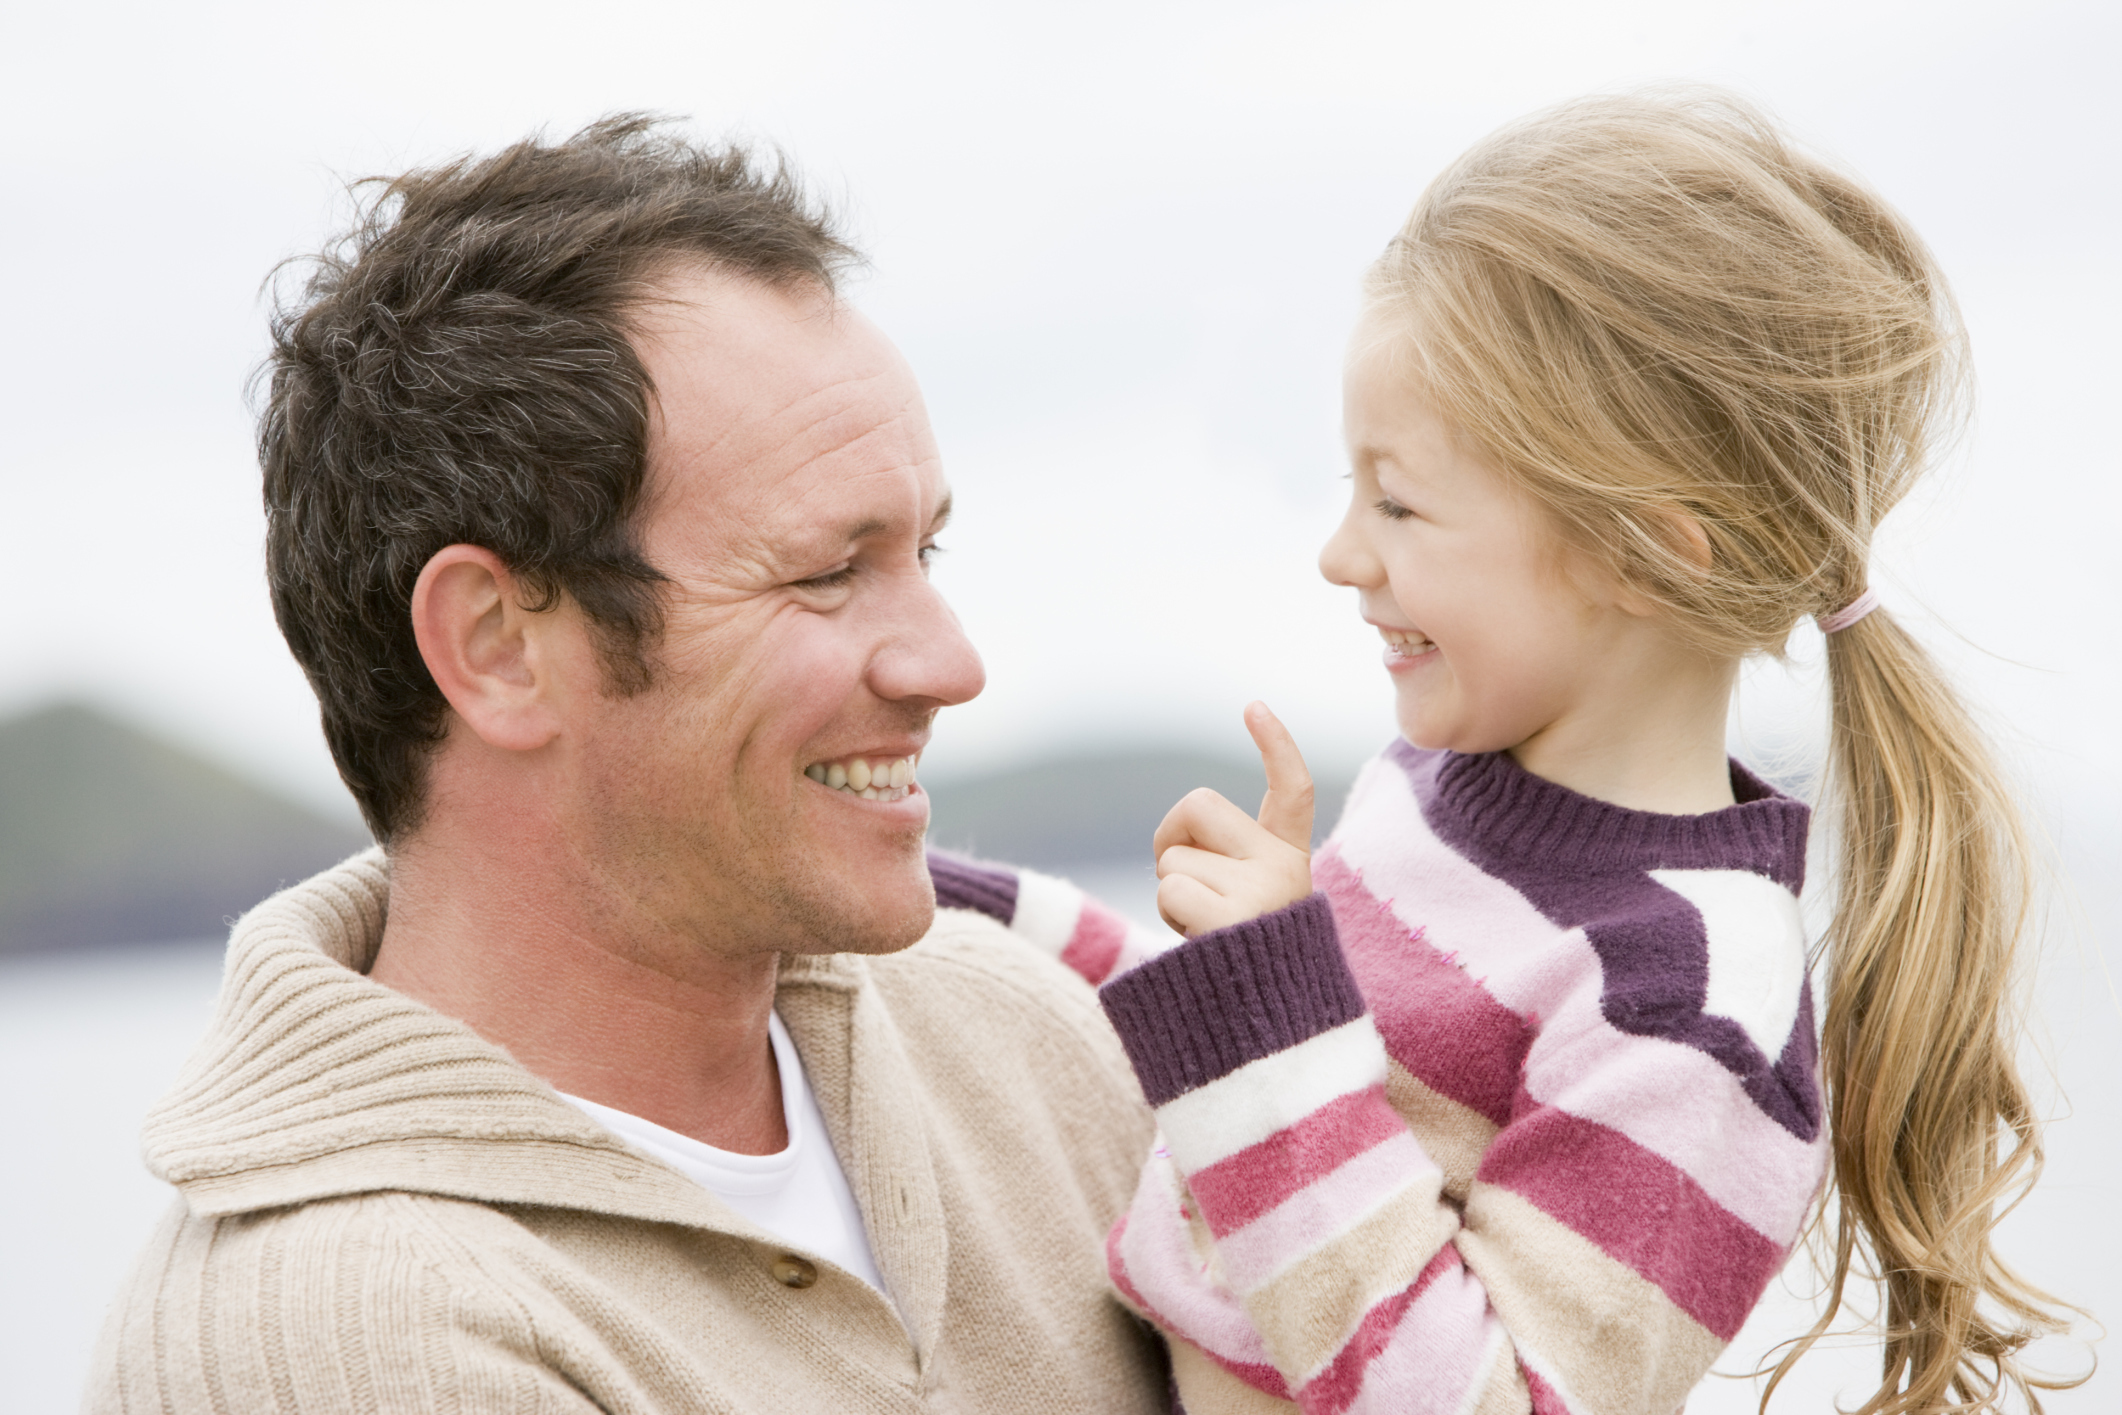 Fathers have an important role to play in their children's lives